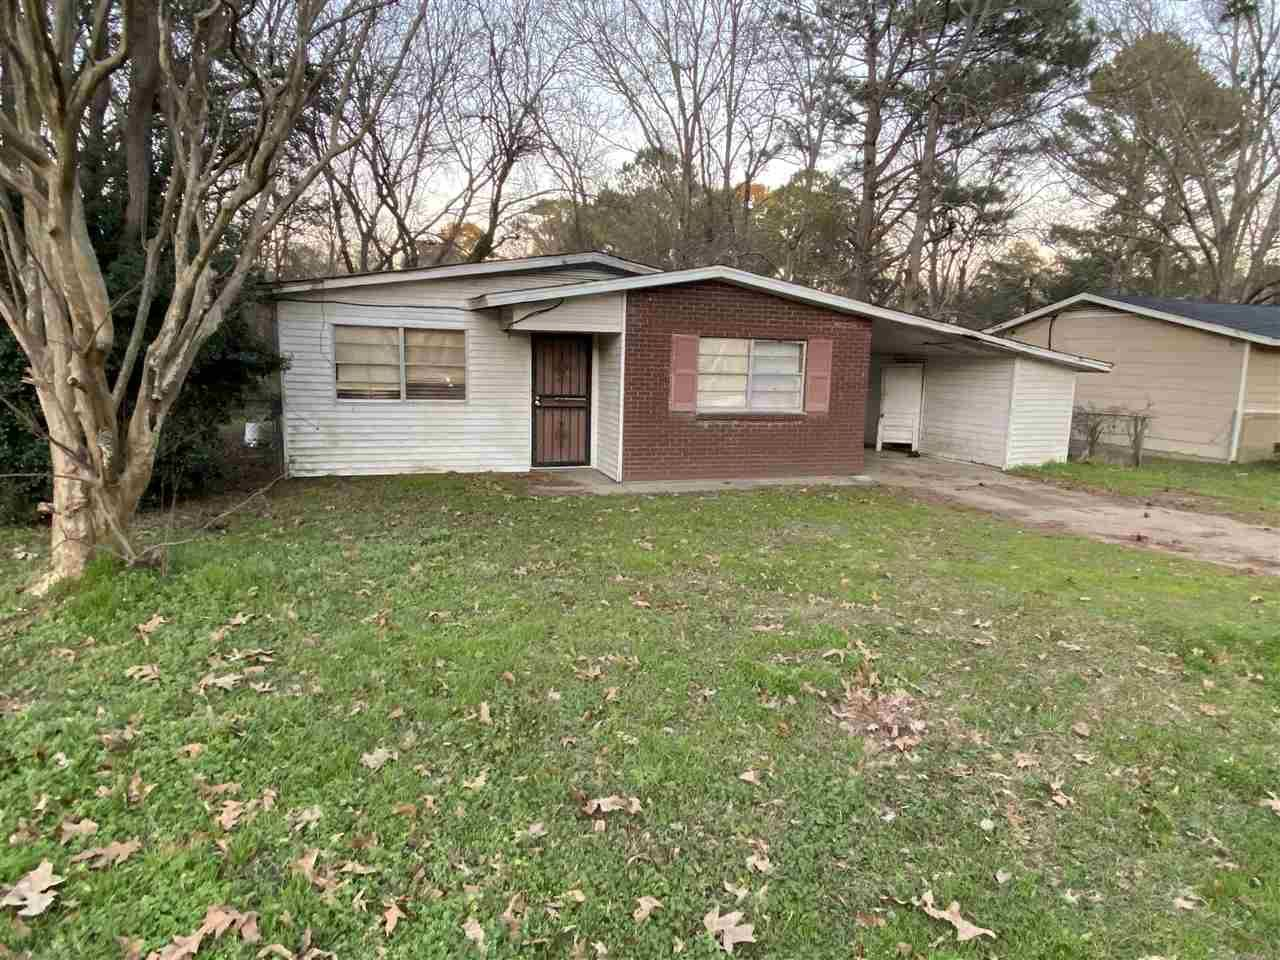 5564 E QUEEN CHRISTINA LN, Jackson, MS 39209 - MLS#: 327351